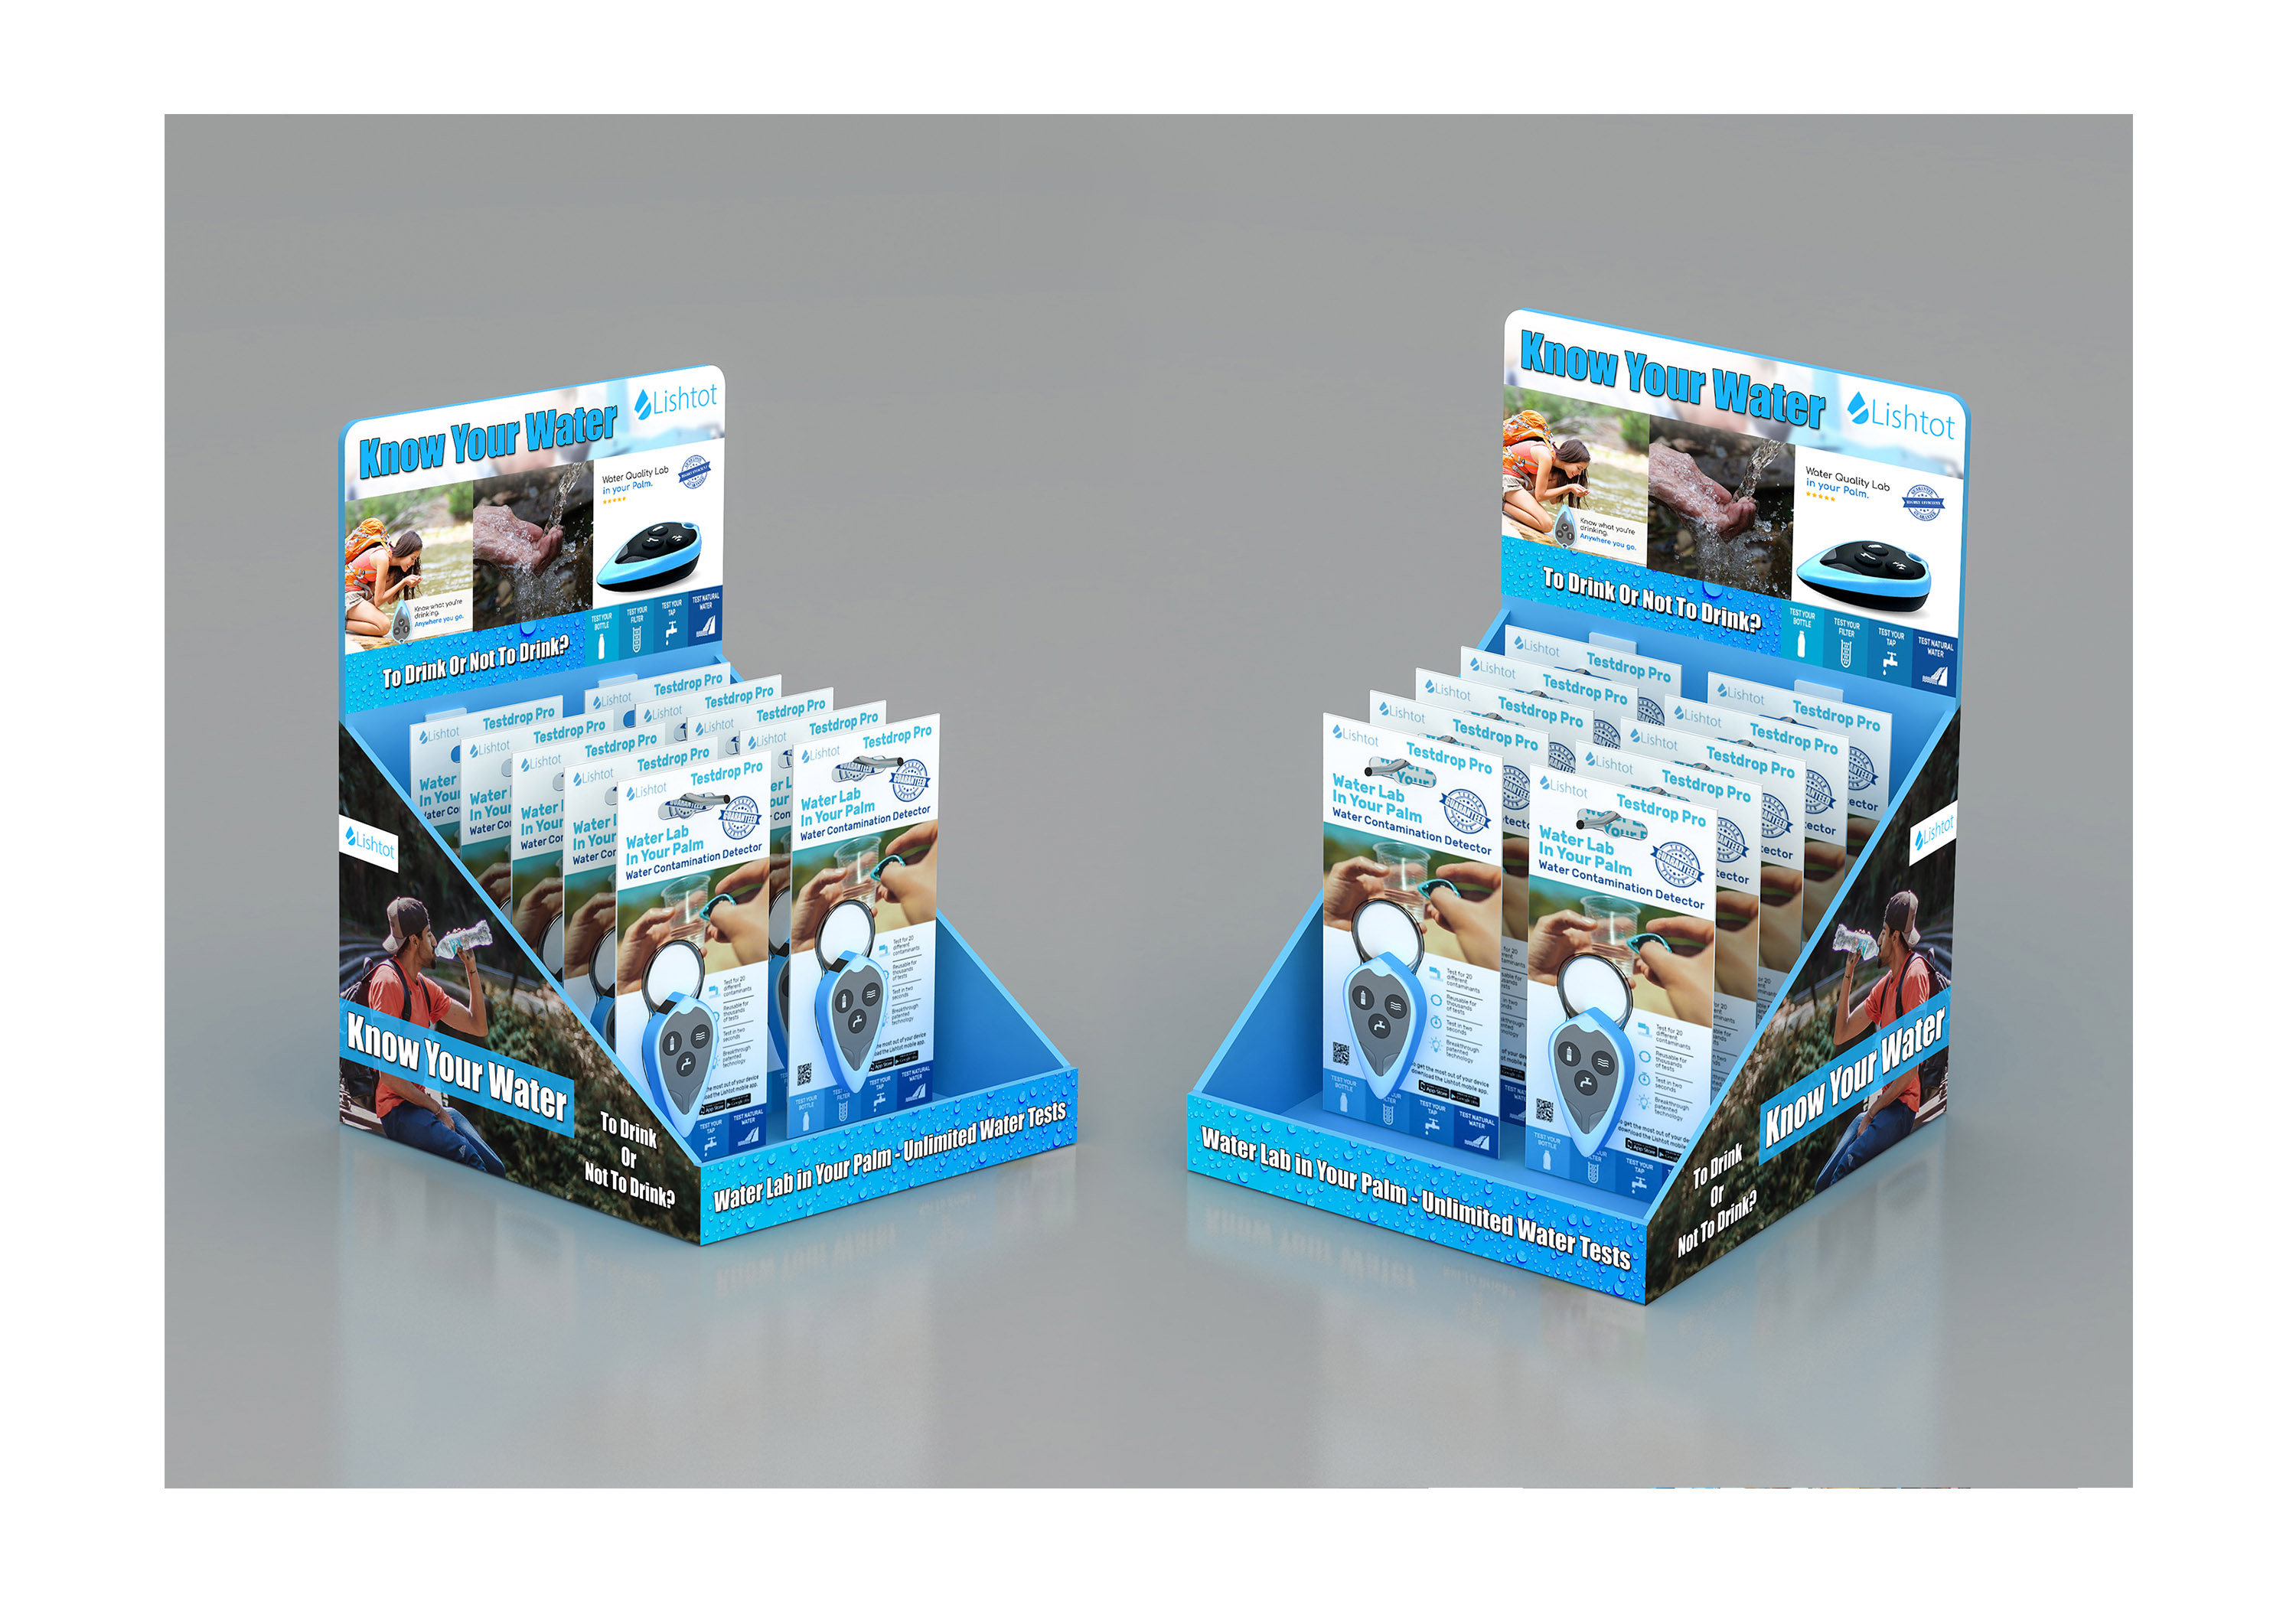 Design Creative Floor Stand and Showcase for Retail